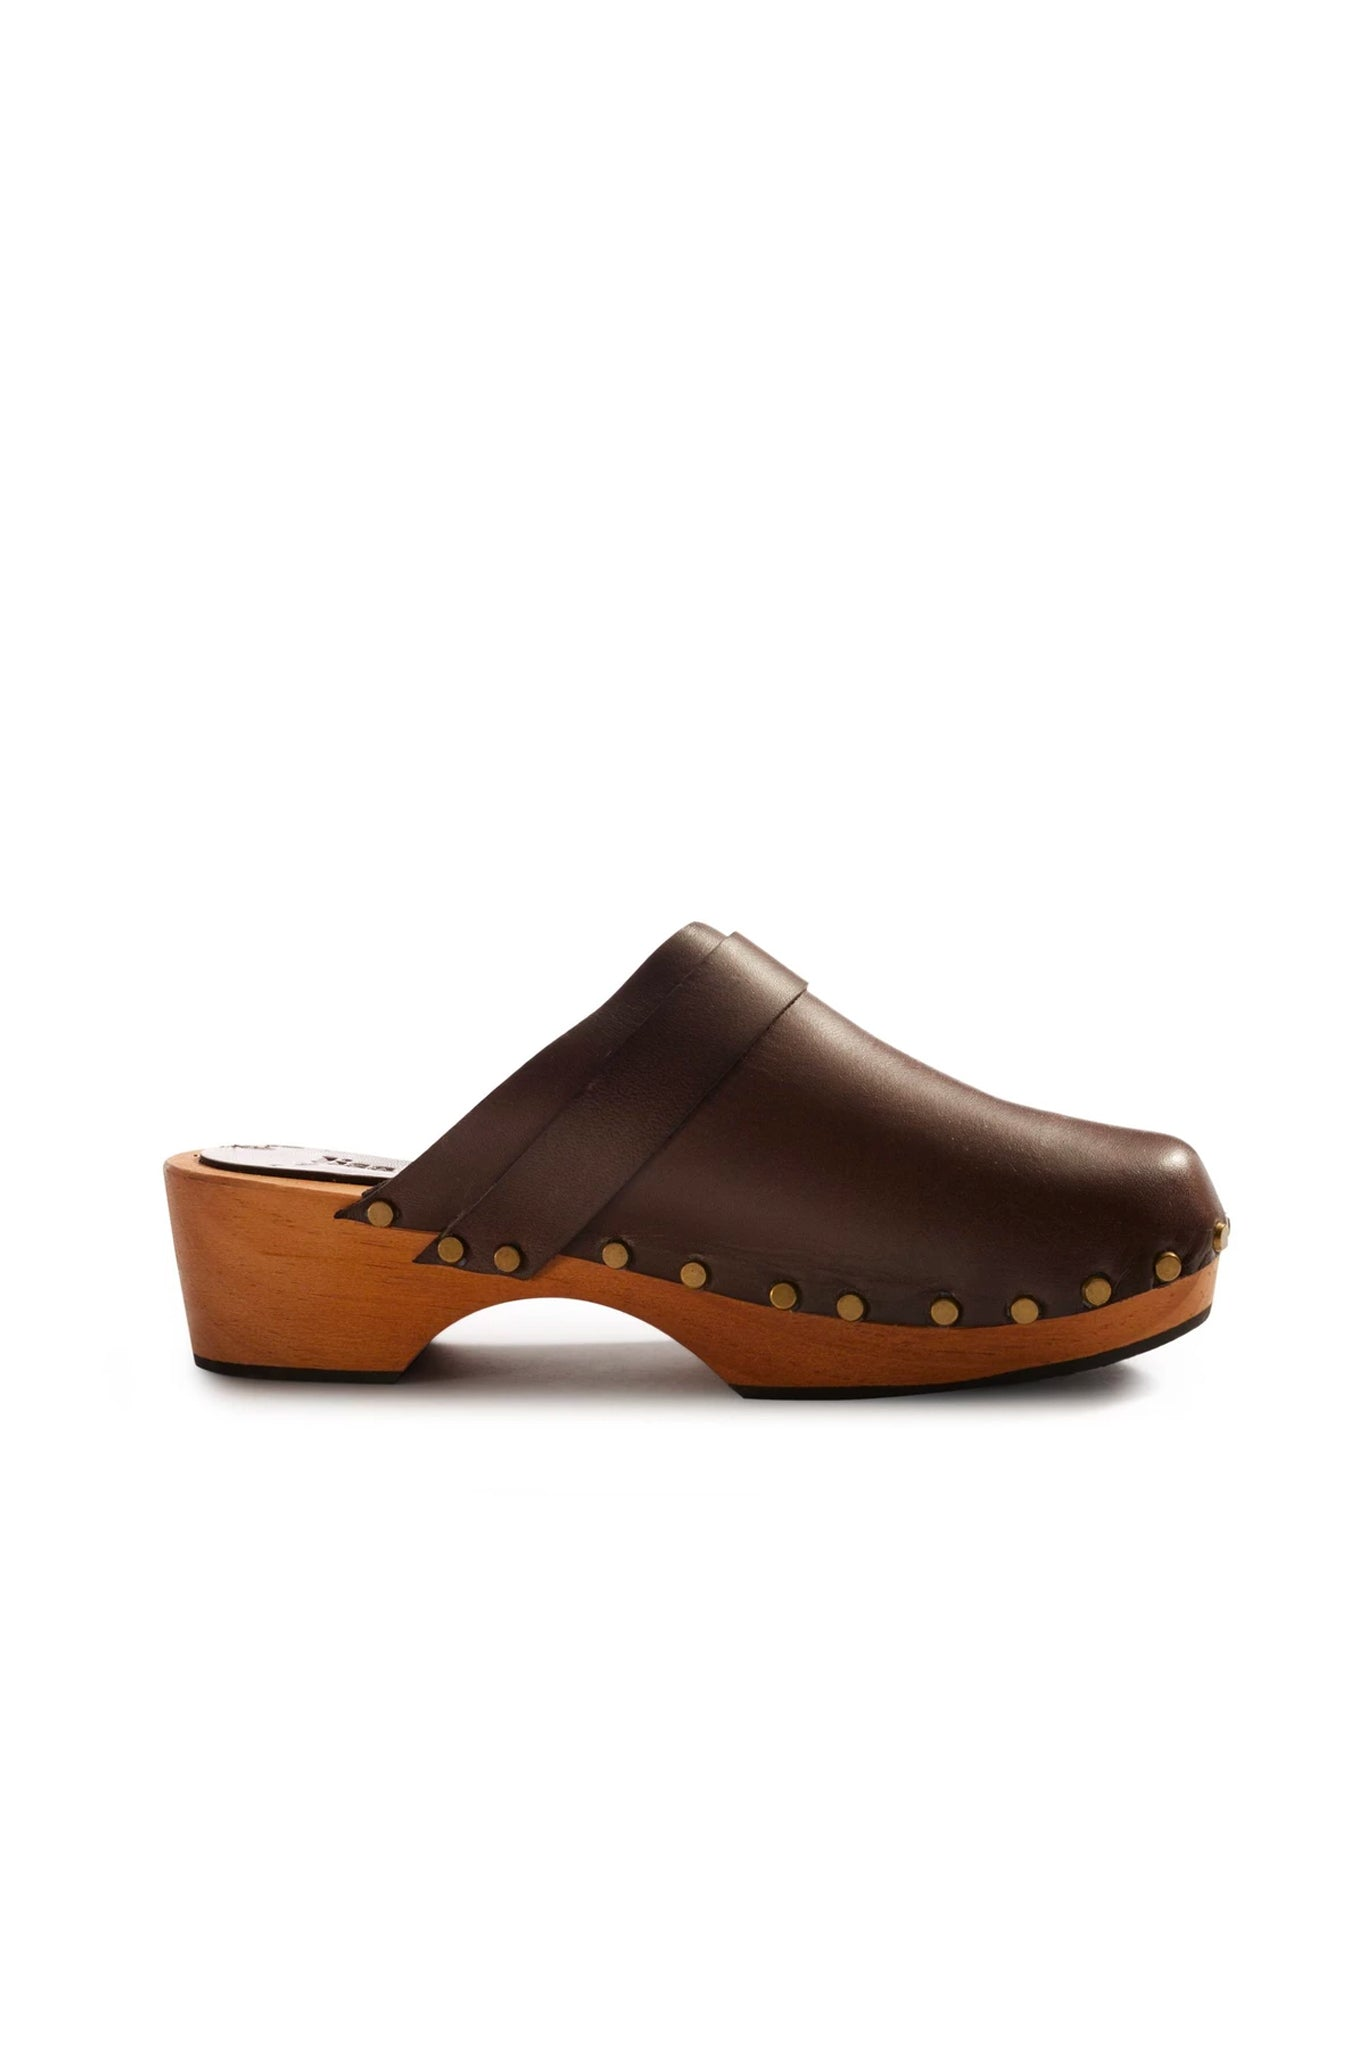 lisa b. Low Heel Leather Clogs - Brown